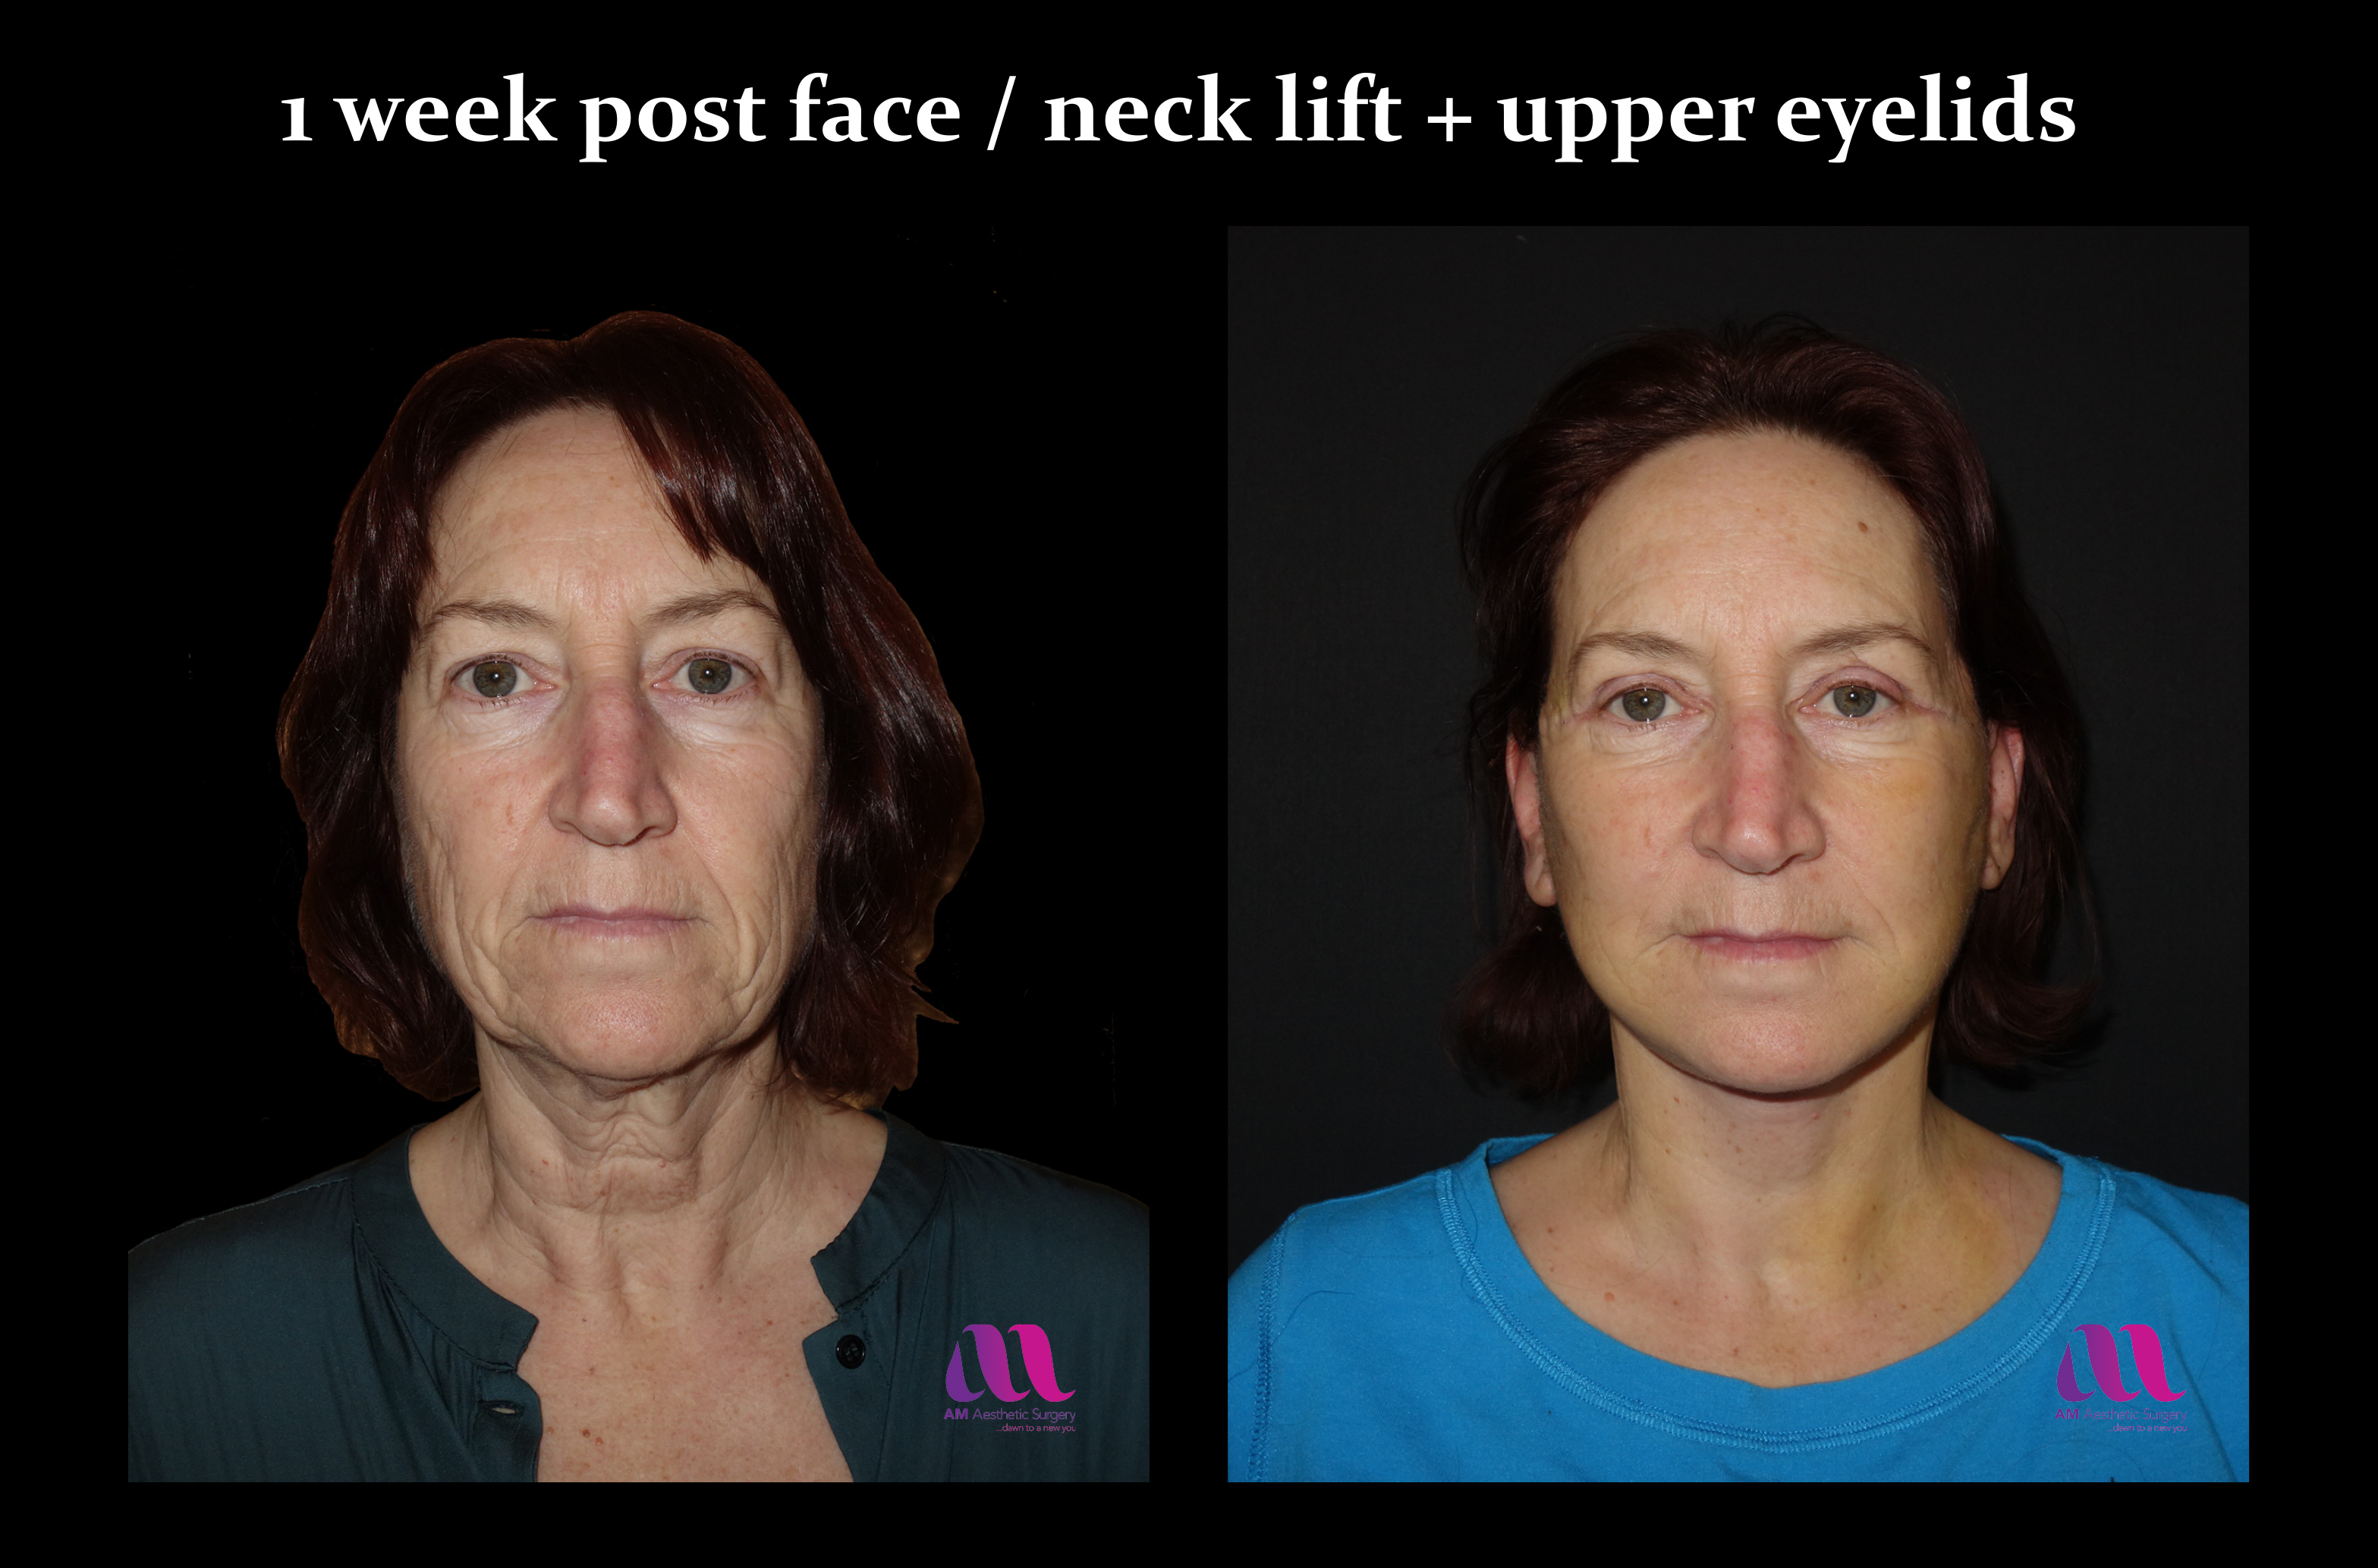 Face Lift +Upp Eyelids13a